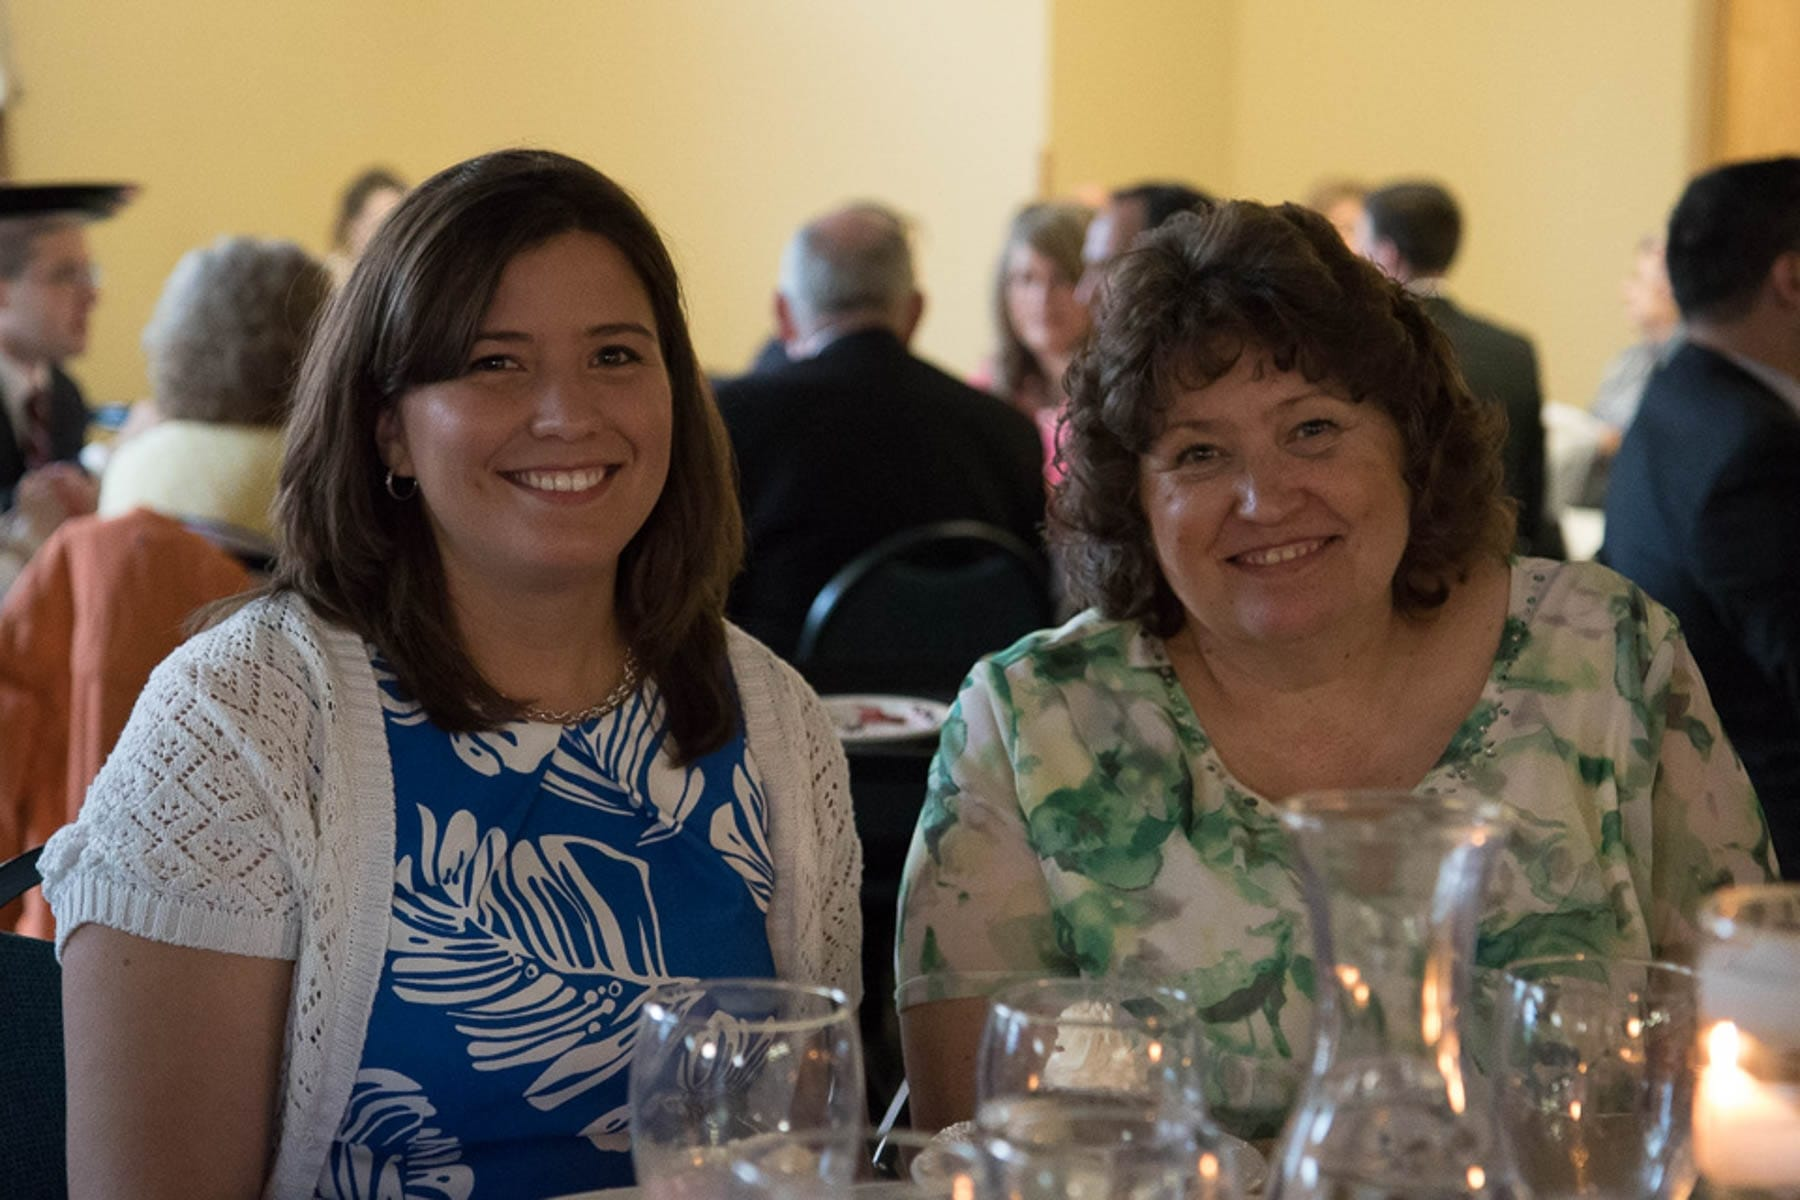 Fairhaven Baptist Church Sustainers' Banquet 2016 (17 of 20)